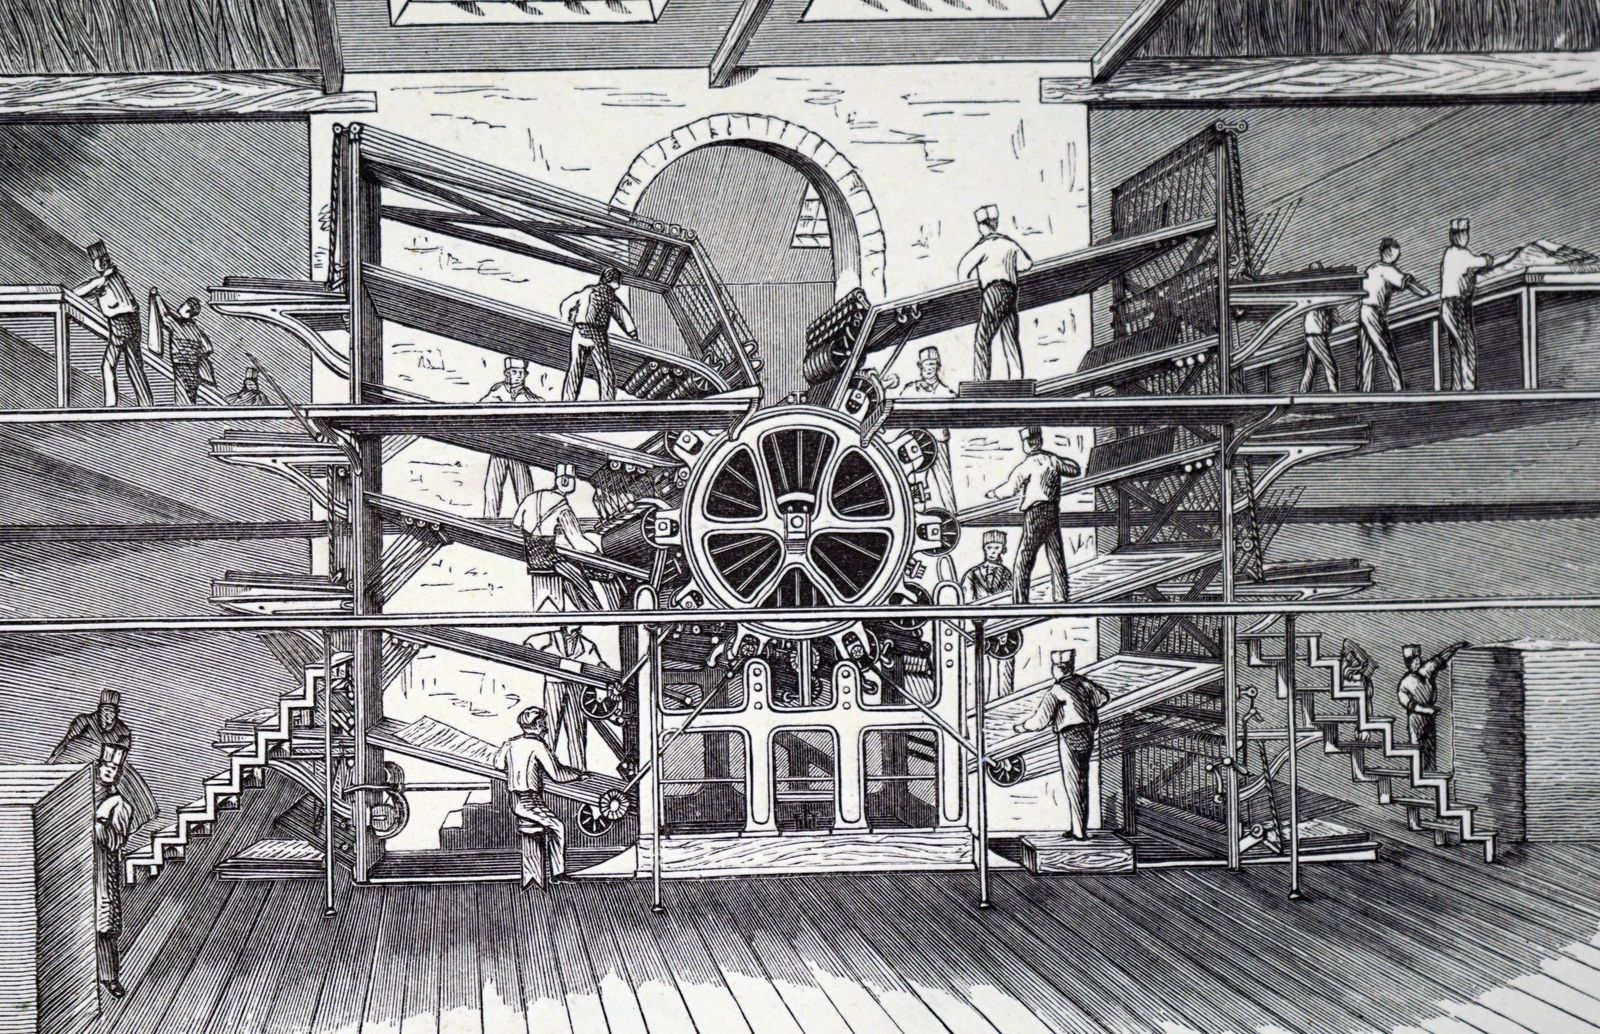 Engraving depicting Richard March Hoe s ten feeder rotary printing press Richard March Hoe 1812 18